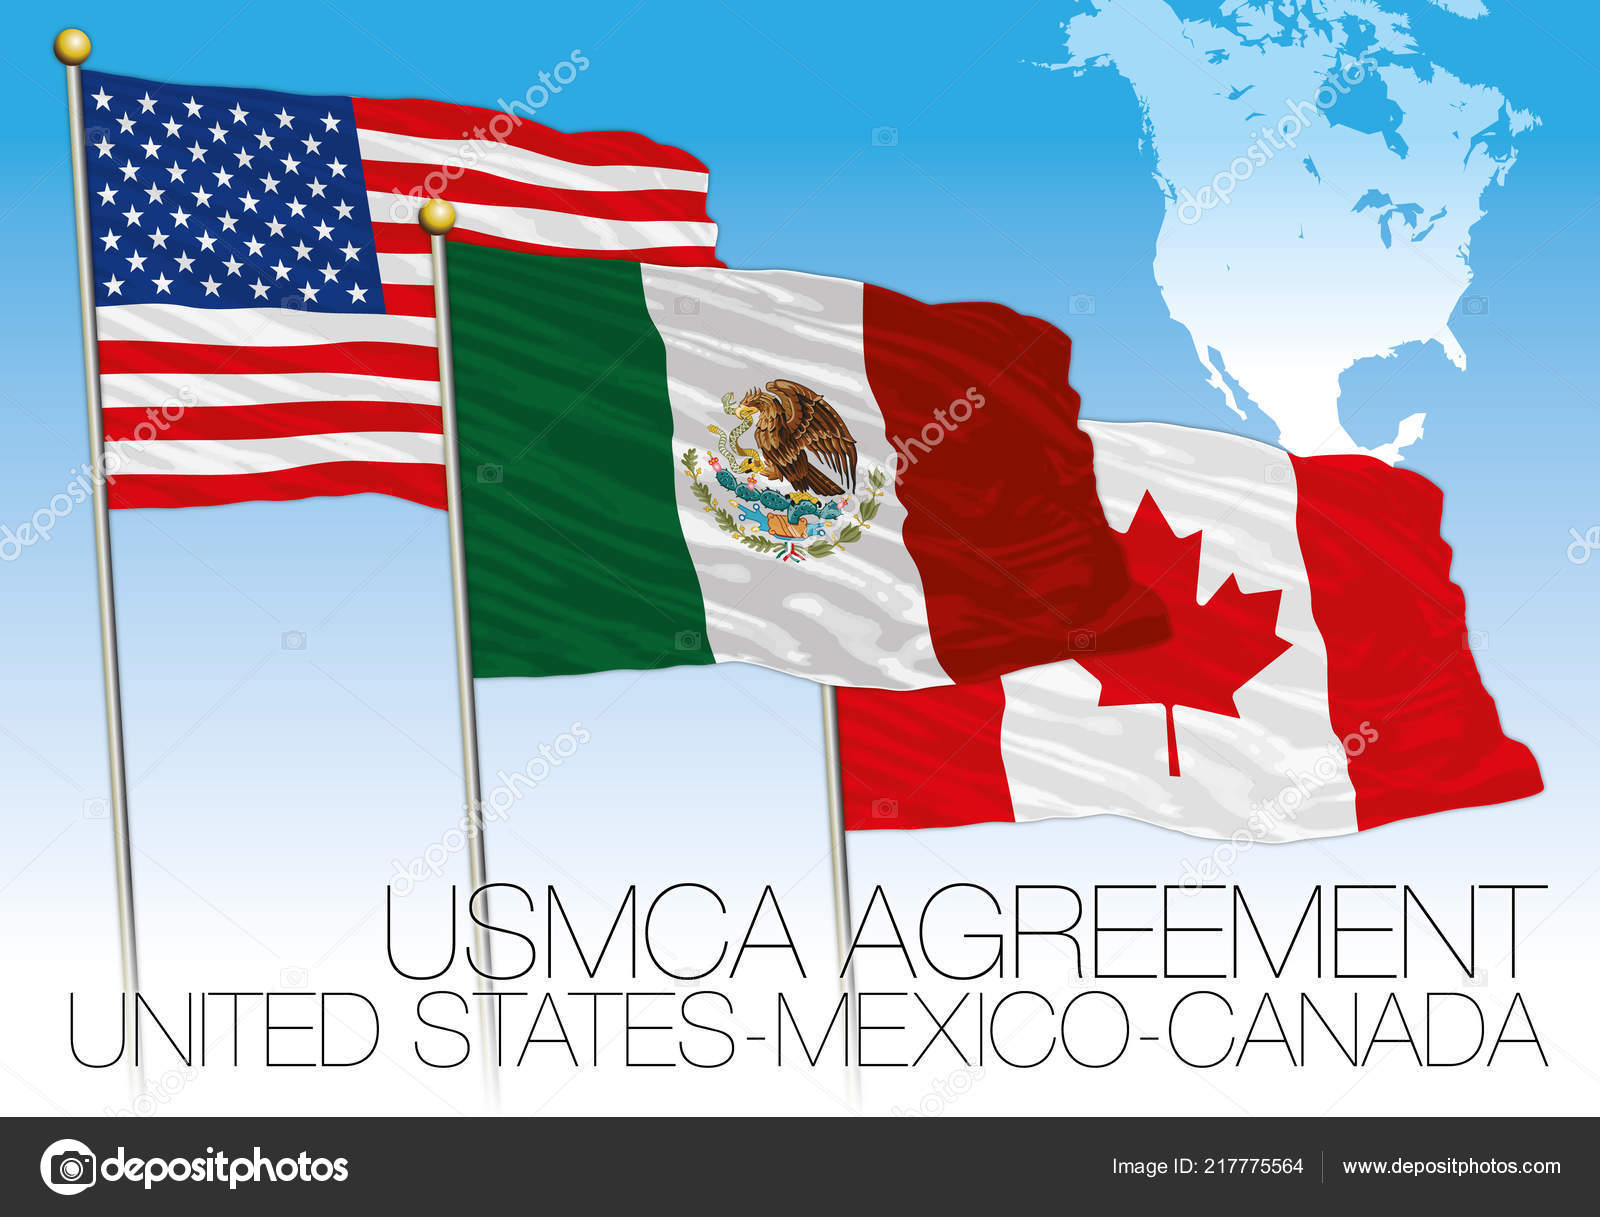 Usmca Agreement 2018 Flags United States Mexico Canada Vector ...